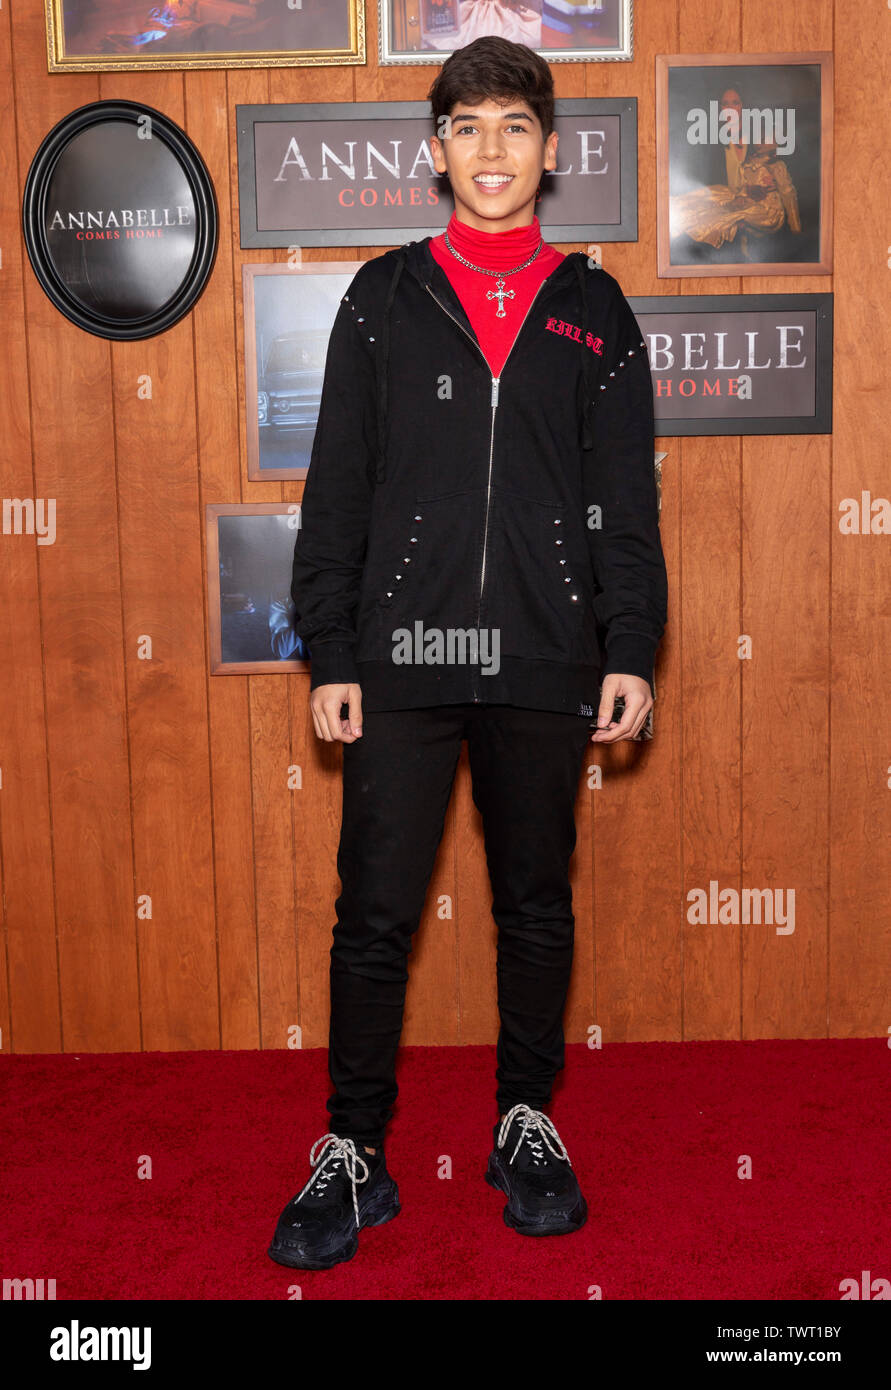 """Westwood, CA - June 20, 2019: Mario Selman attends the Premiere Of Warner Bros' """"Annabelle Comes Home"""" held at Regency Village Theatre Stock Photo"""